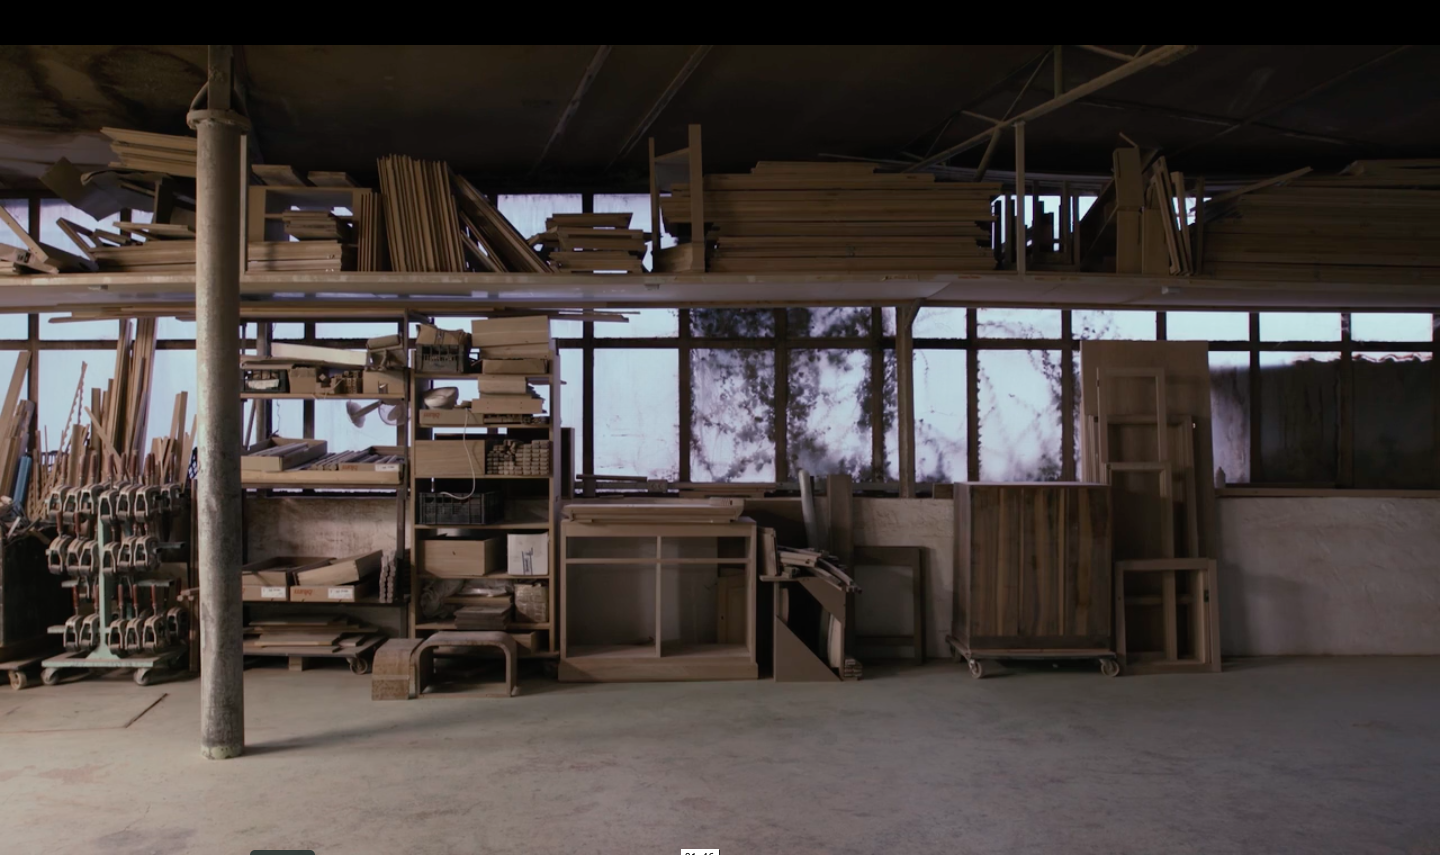 An atmospheric still of the  brand's Slovenian factory  from the gentle and absorbing film by Ben Stevenson.